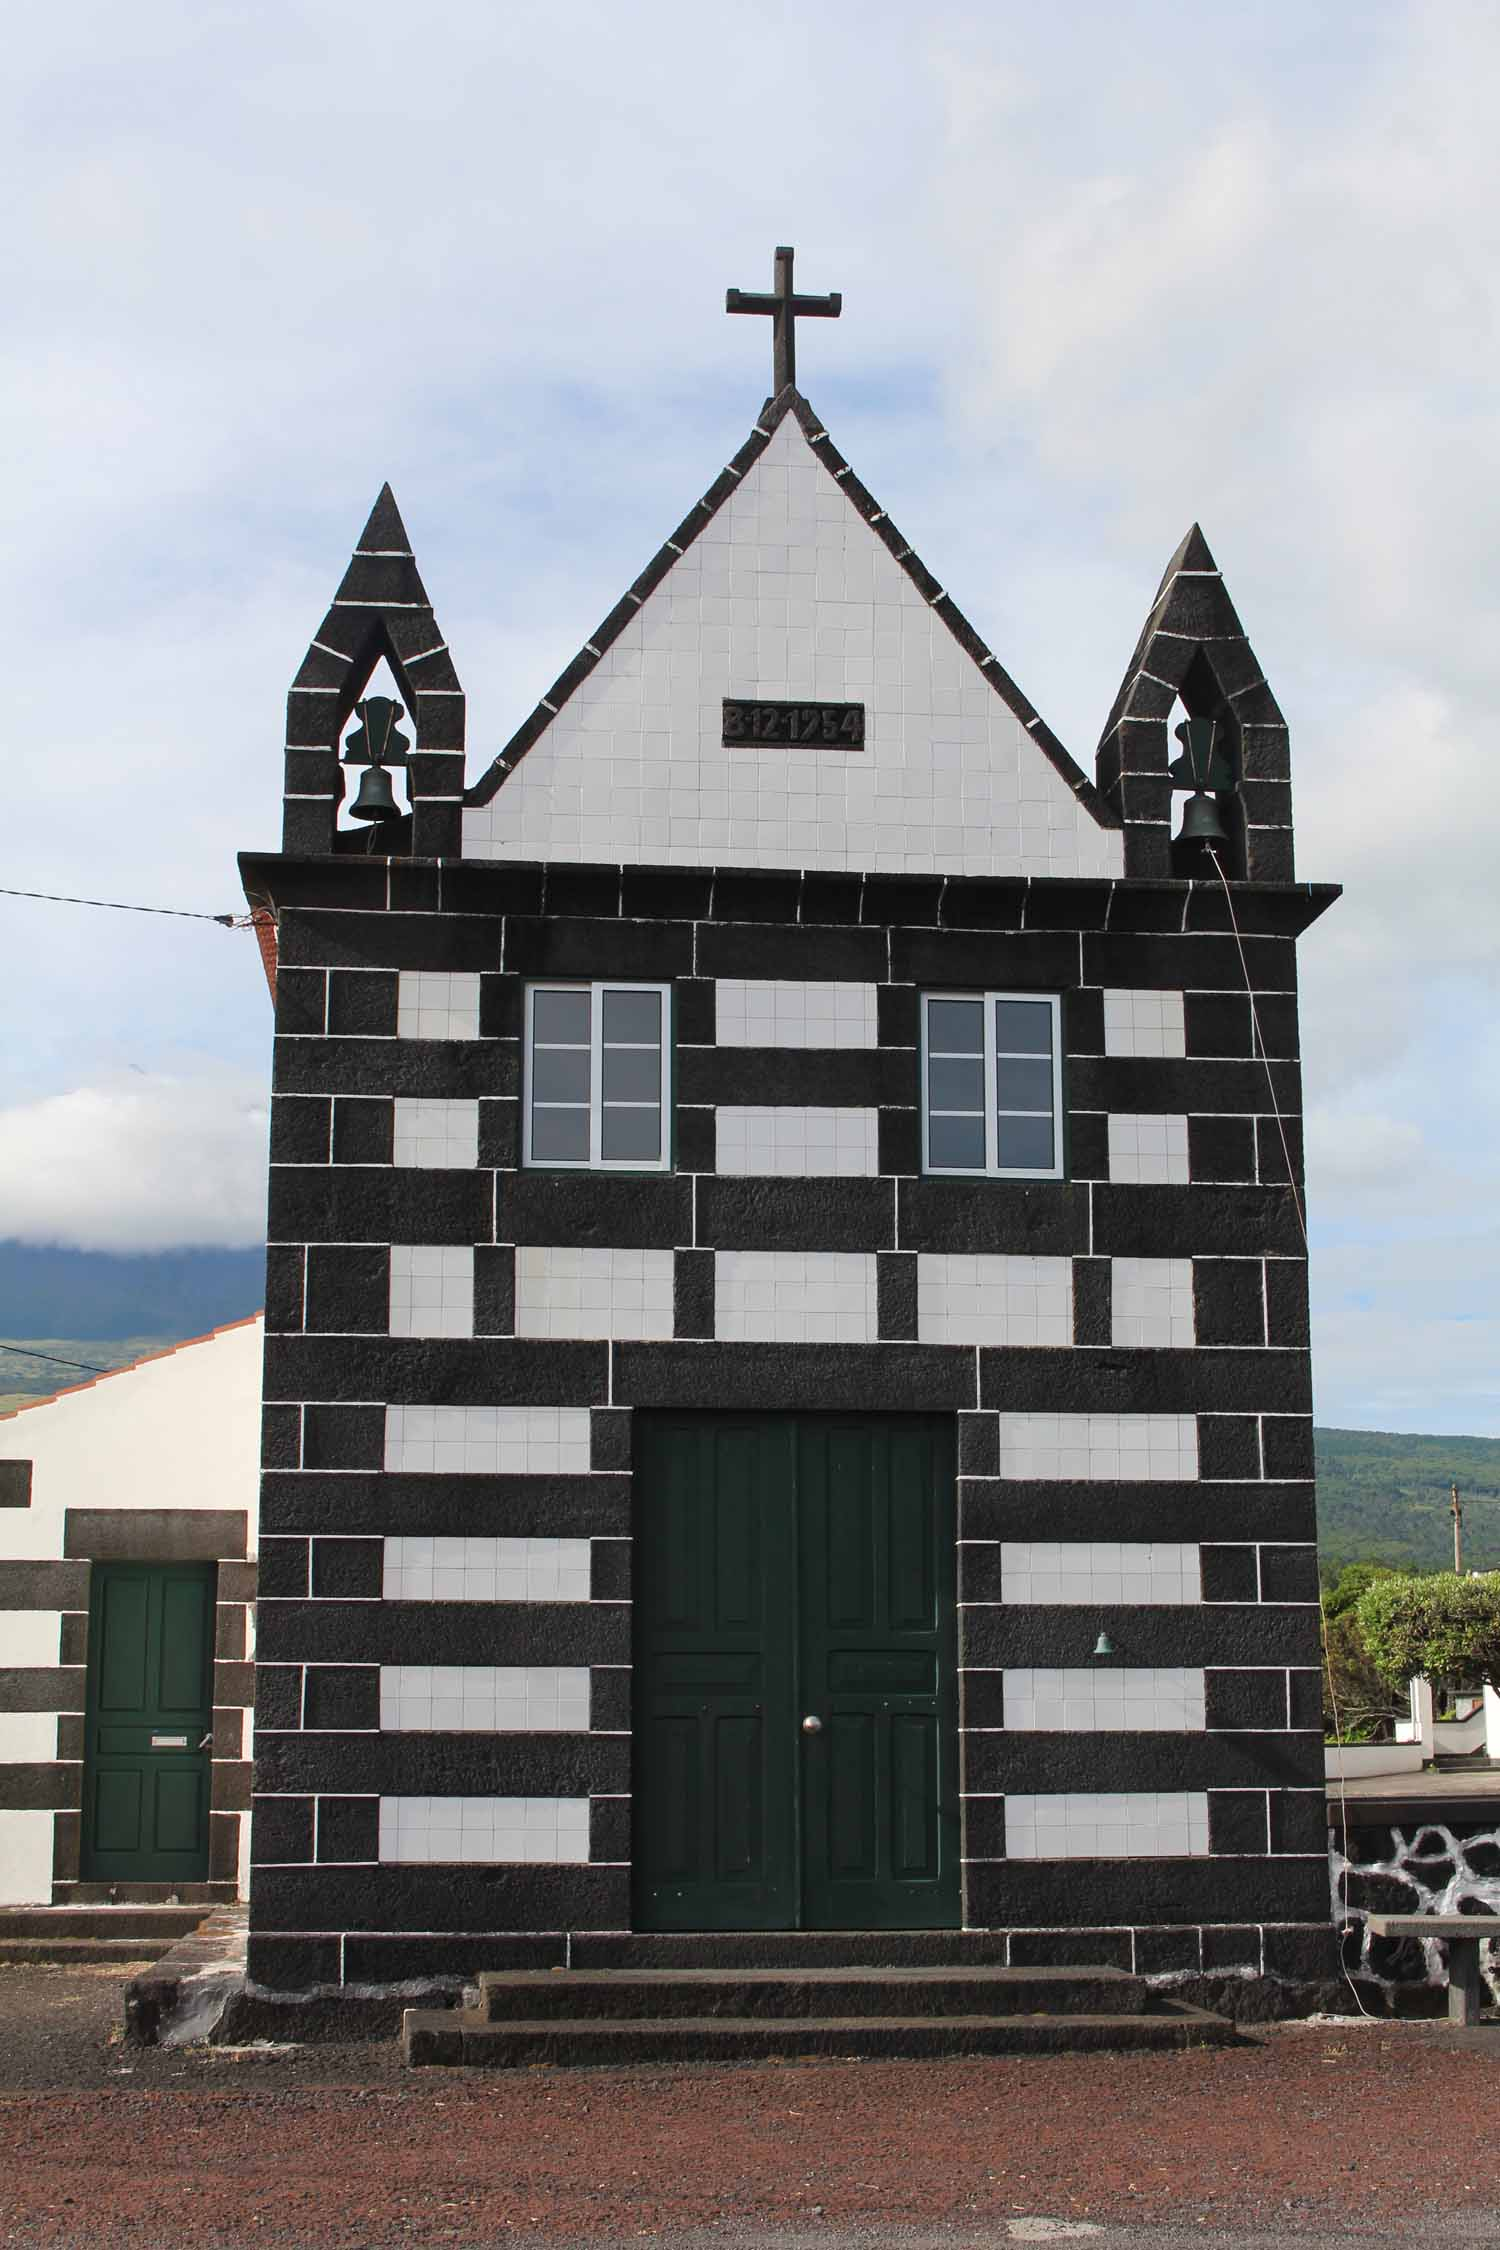 The church of Arcos in Pico Island, Azores